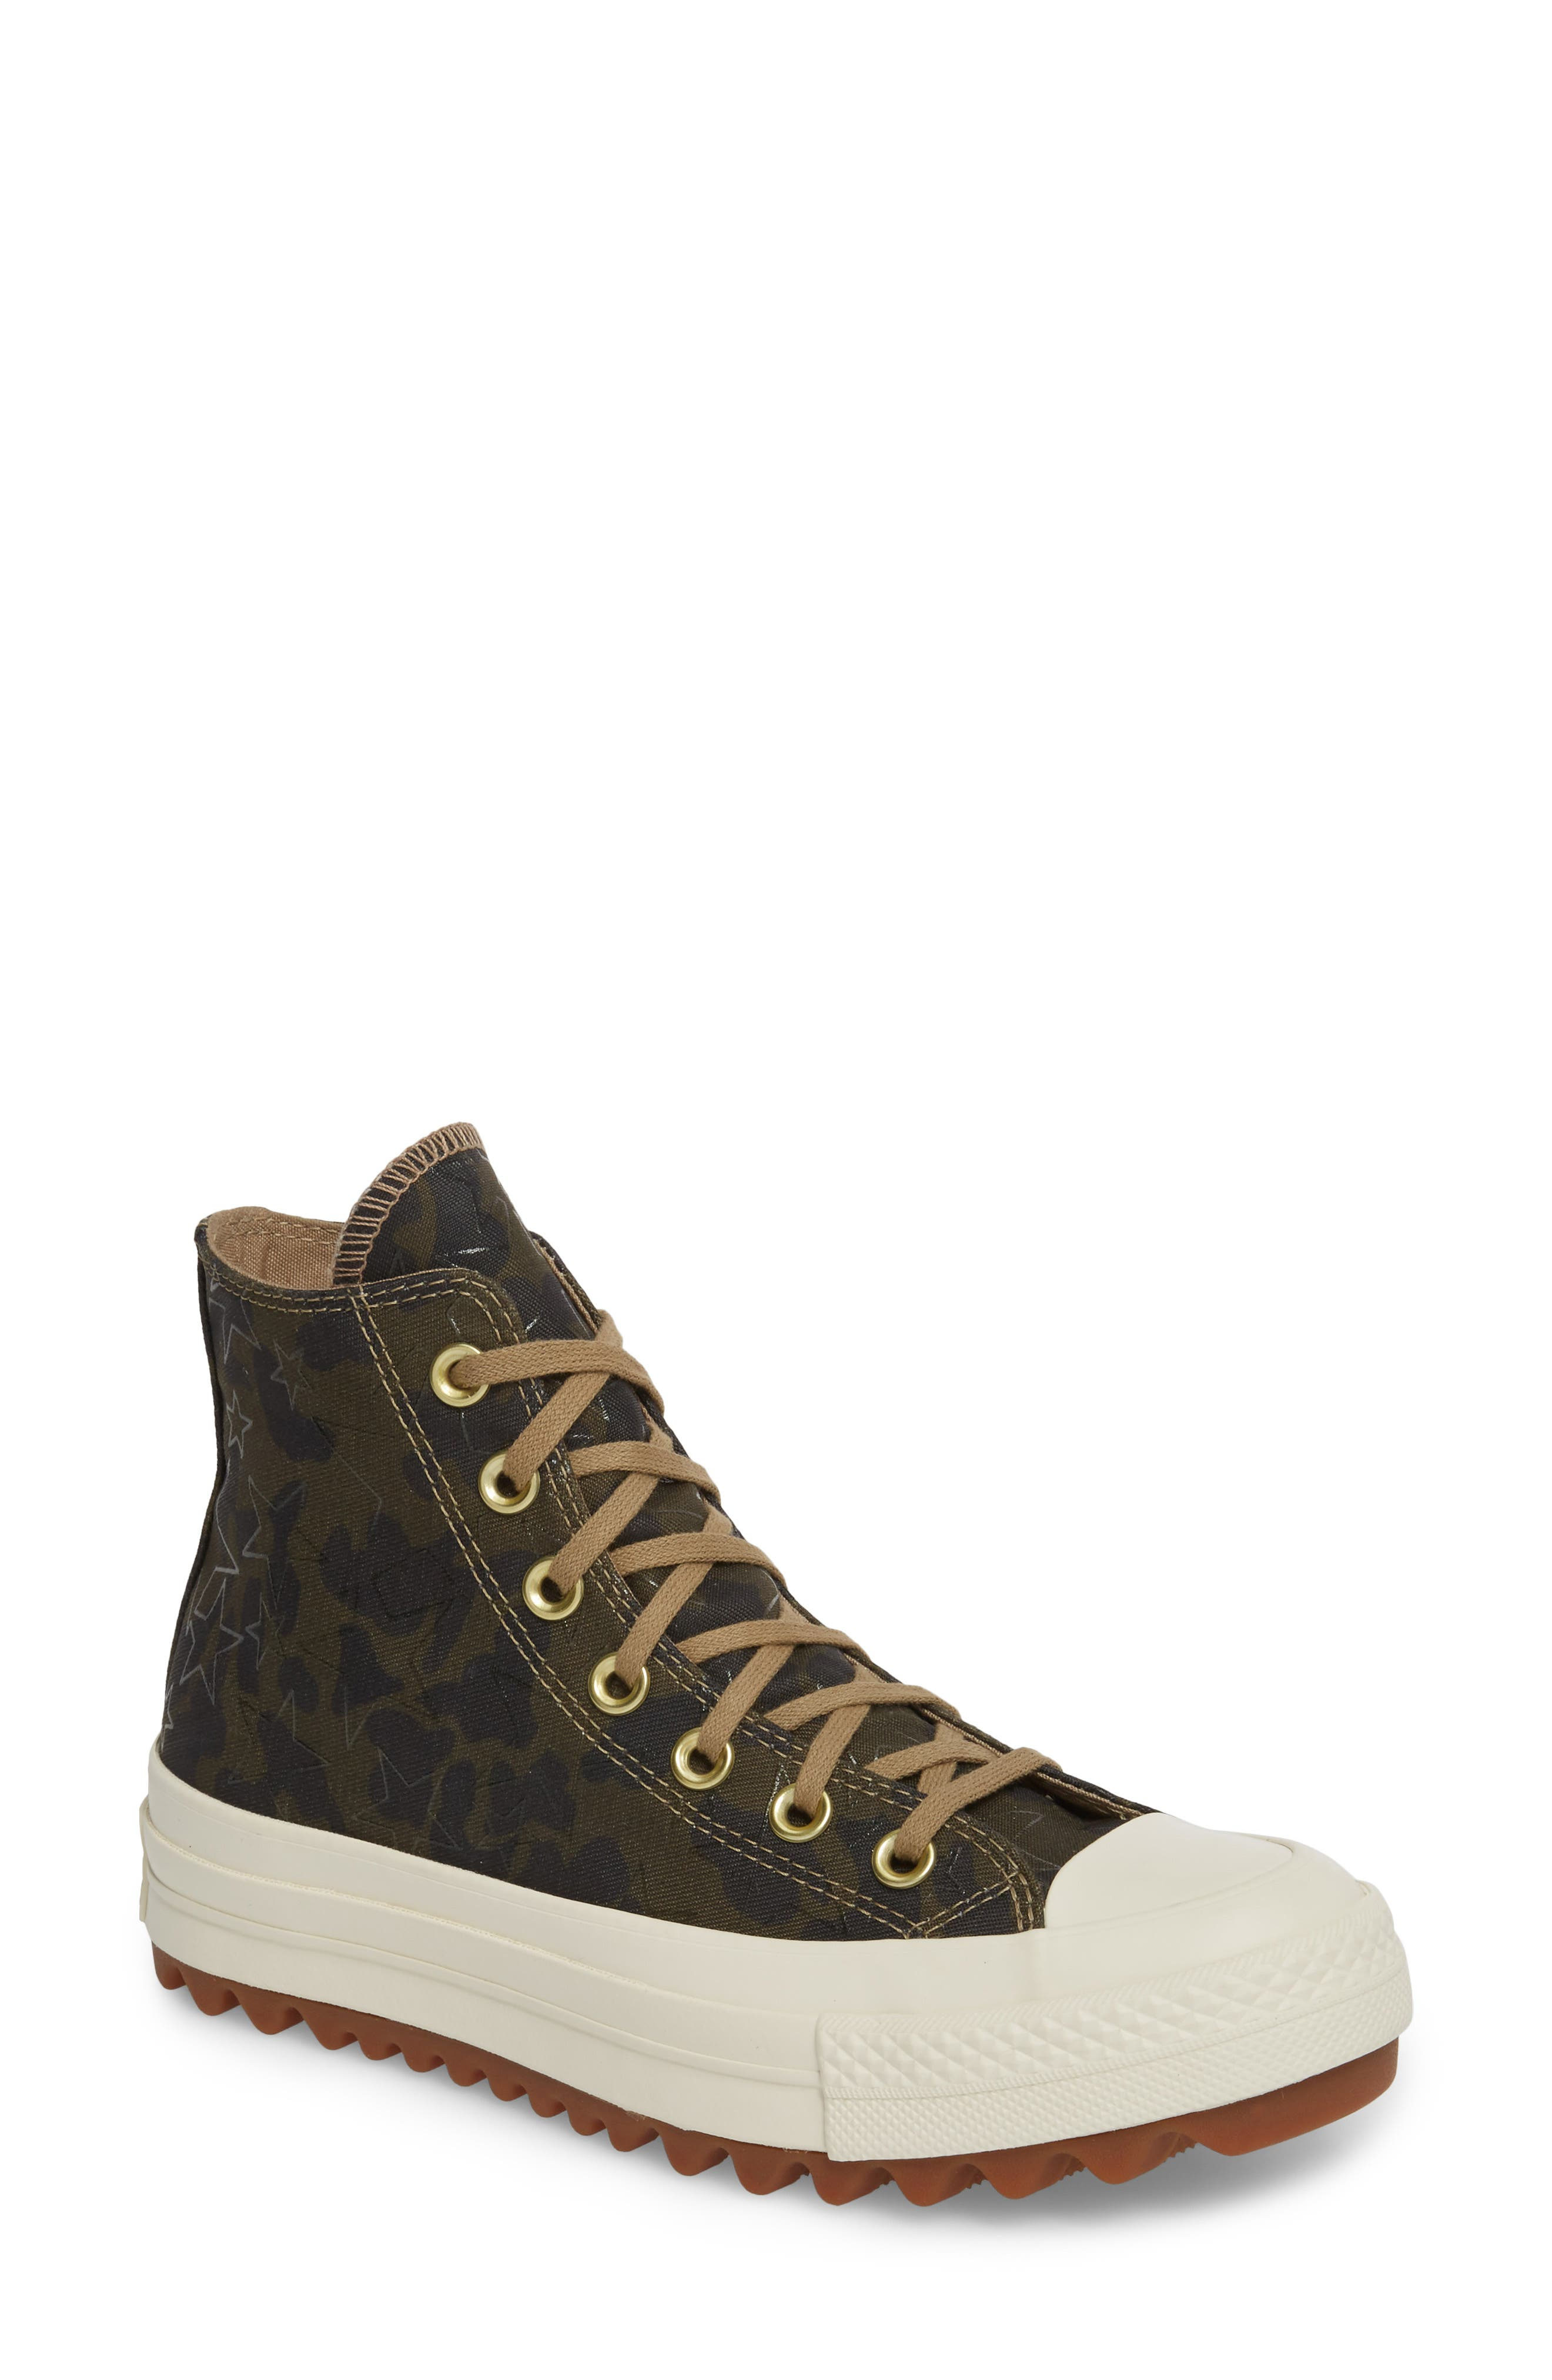 Chuck Taylor<sup>®</sup> All Star<sup>®</sup> Lift Ripple High Top Sneaker,                         Main,                         color, Khaki